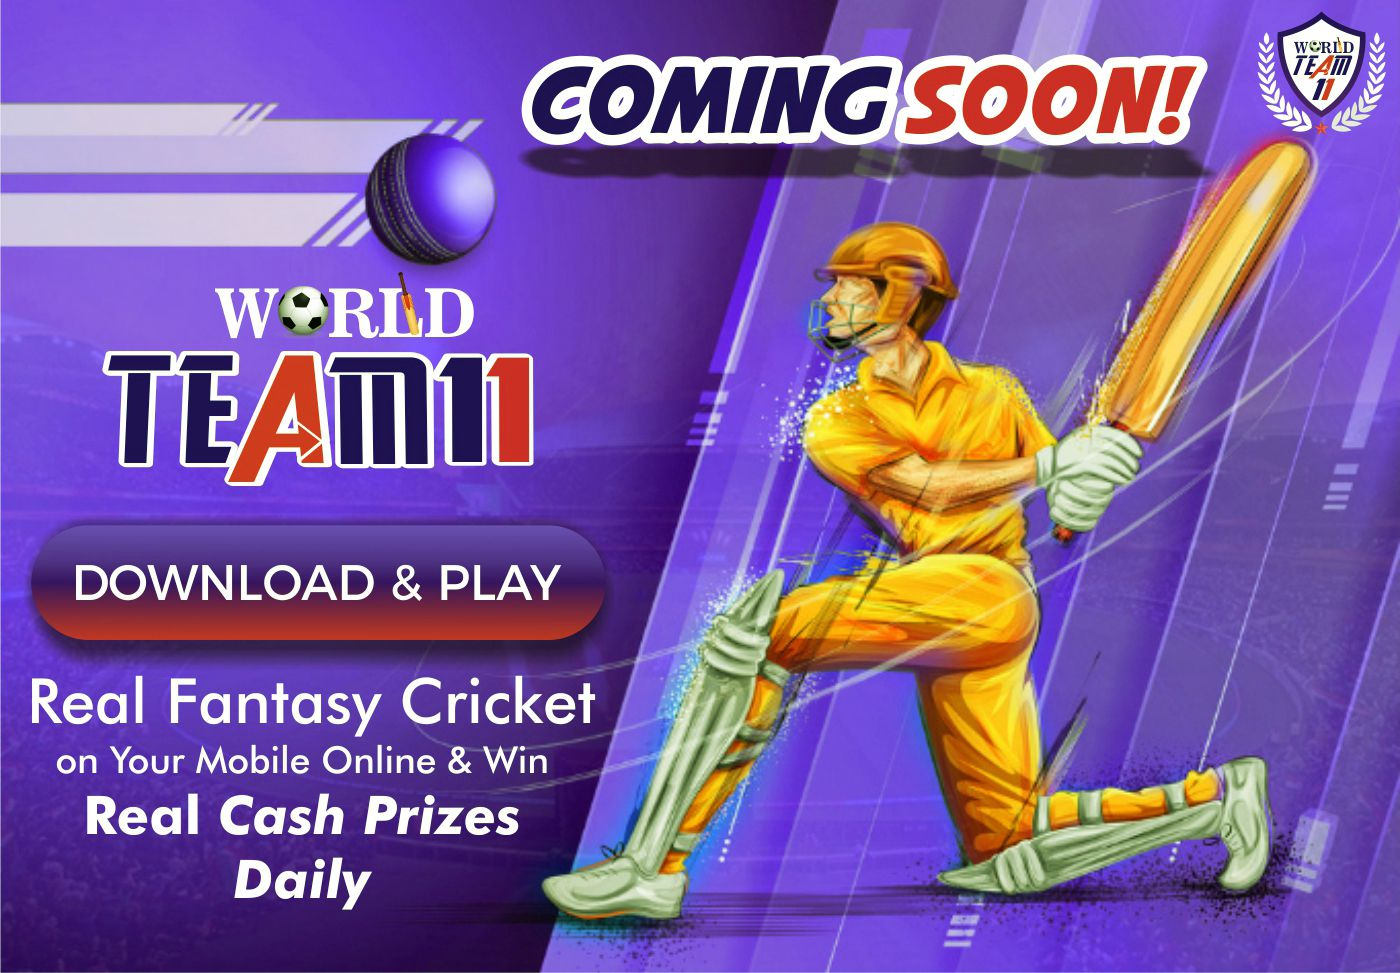 COMING SOON WORLD TEAM11 Download and Play Real Fantasy